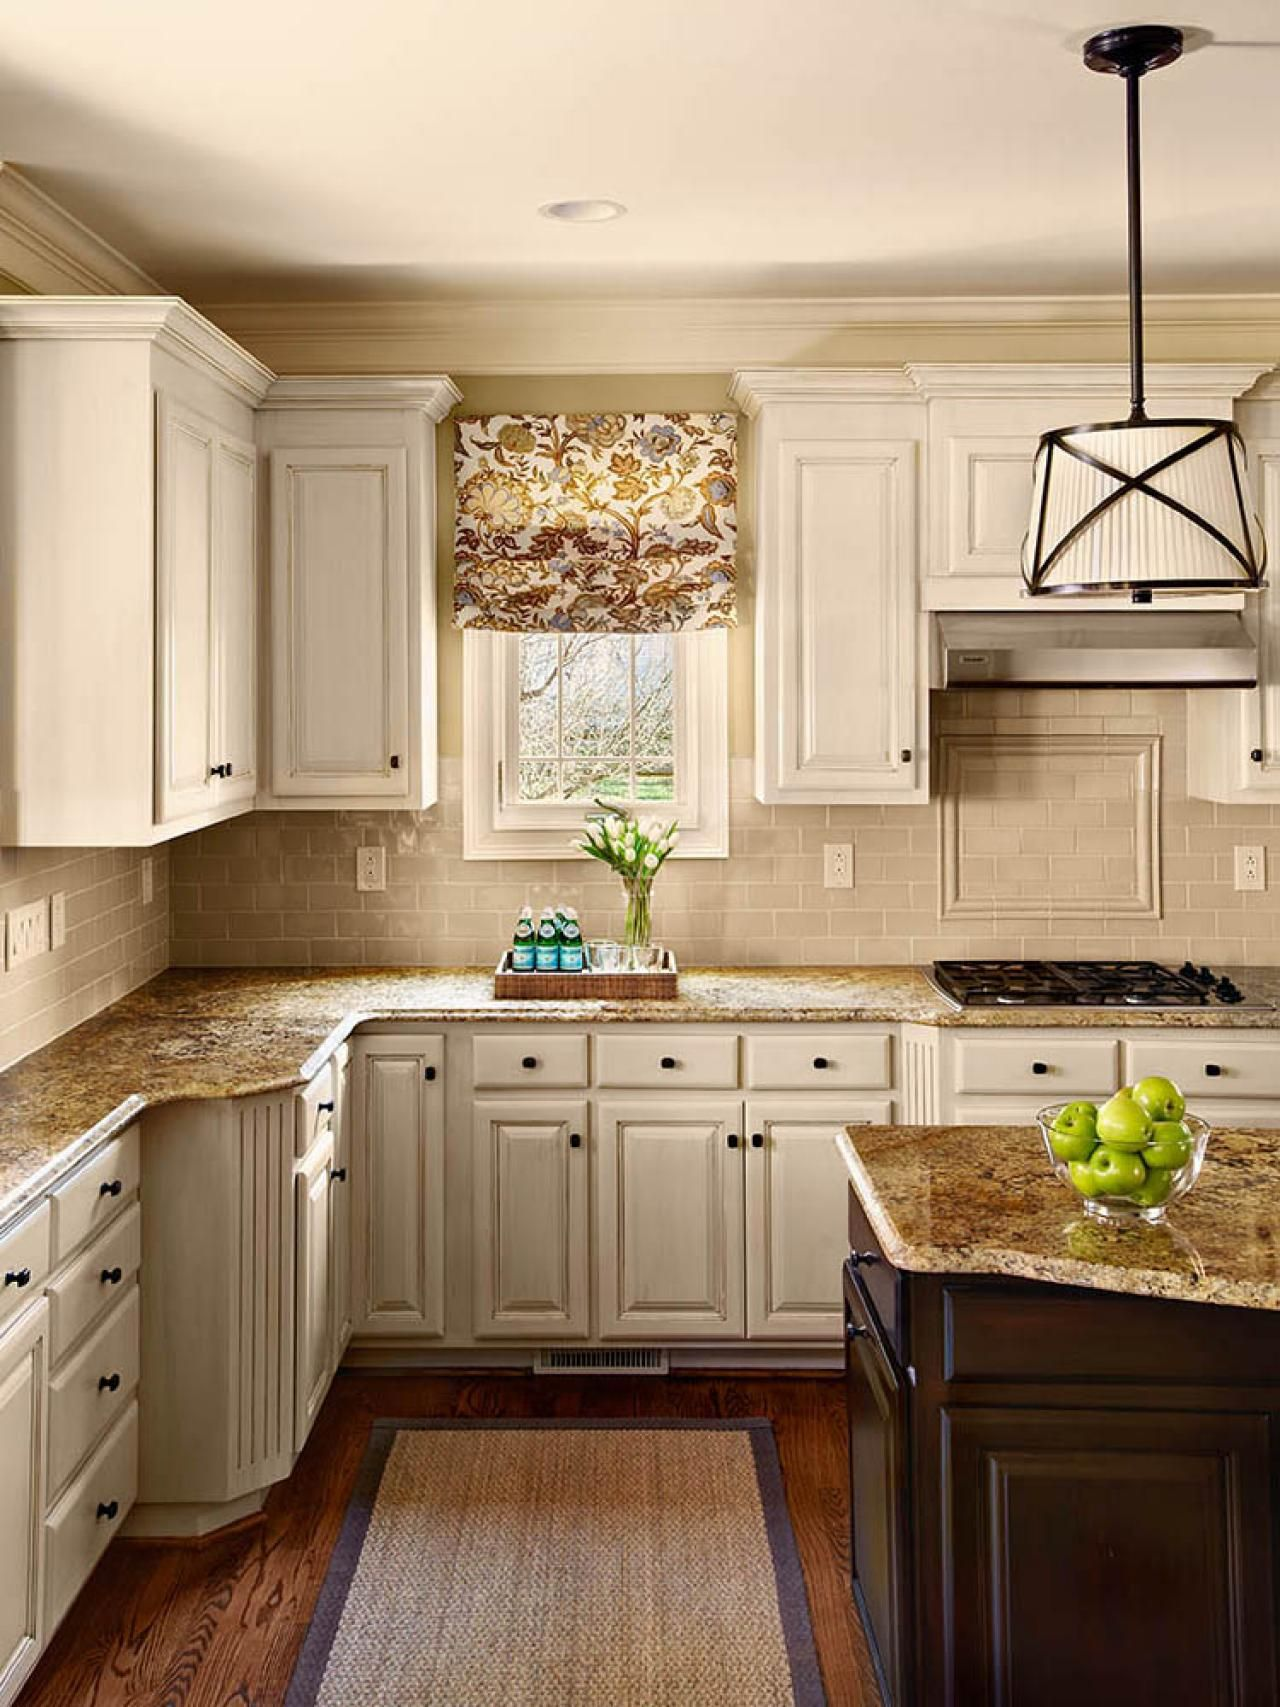 pictures of kitchen cabinets ideas inspiration from hgtv kitchen ideas design with on kitchen ideas cabinets id=63585